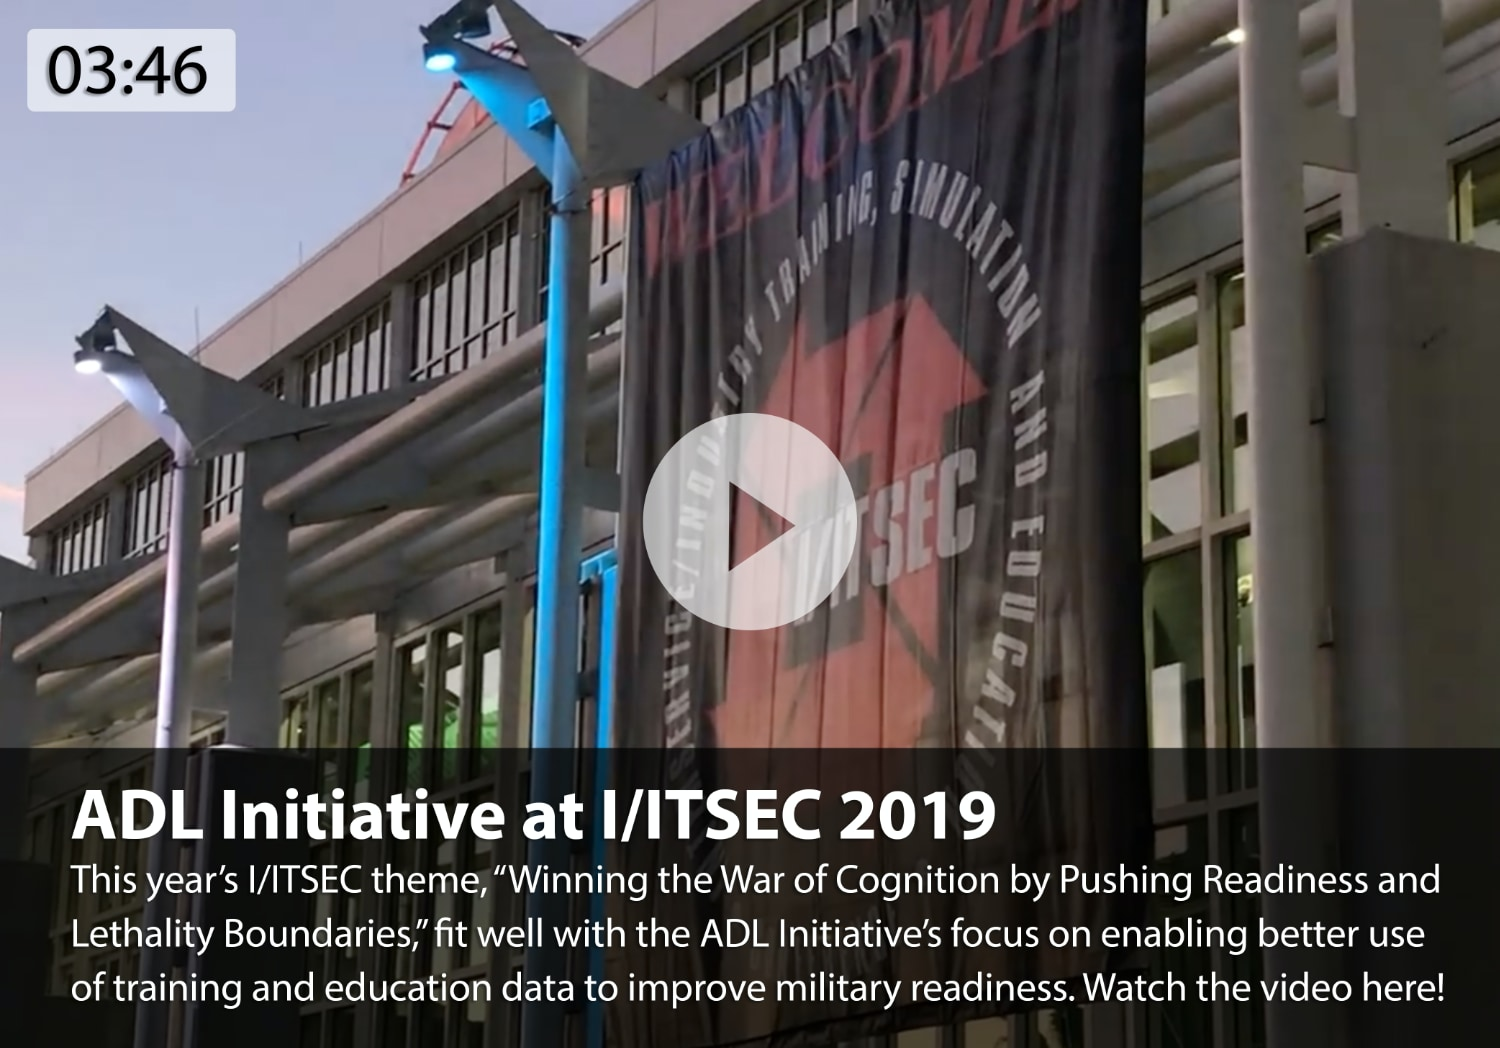 ADL Initiative at I/ITSEC 2019